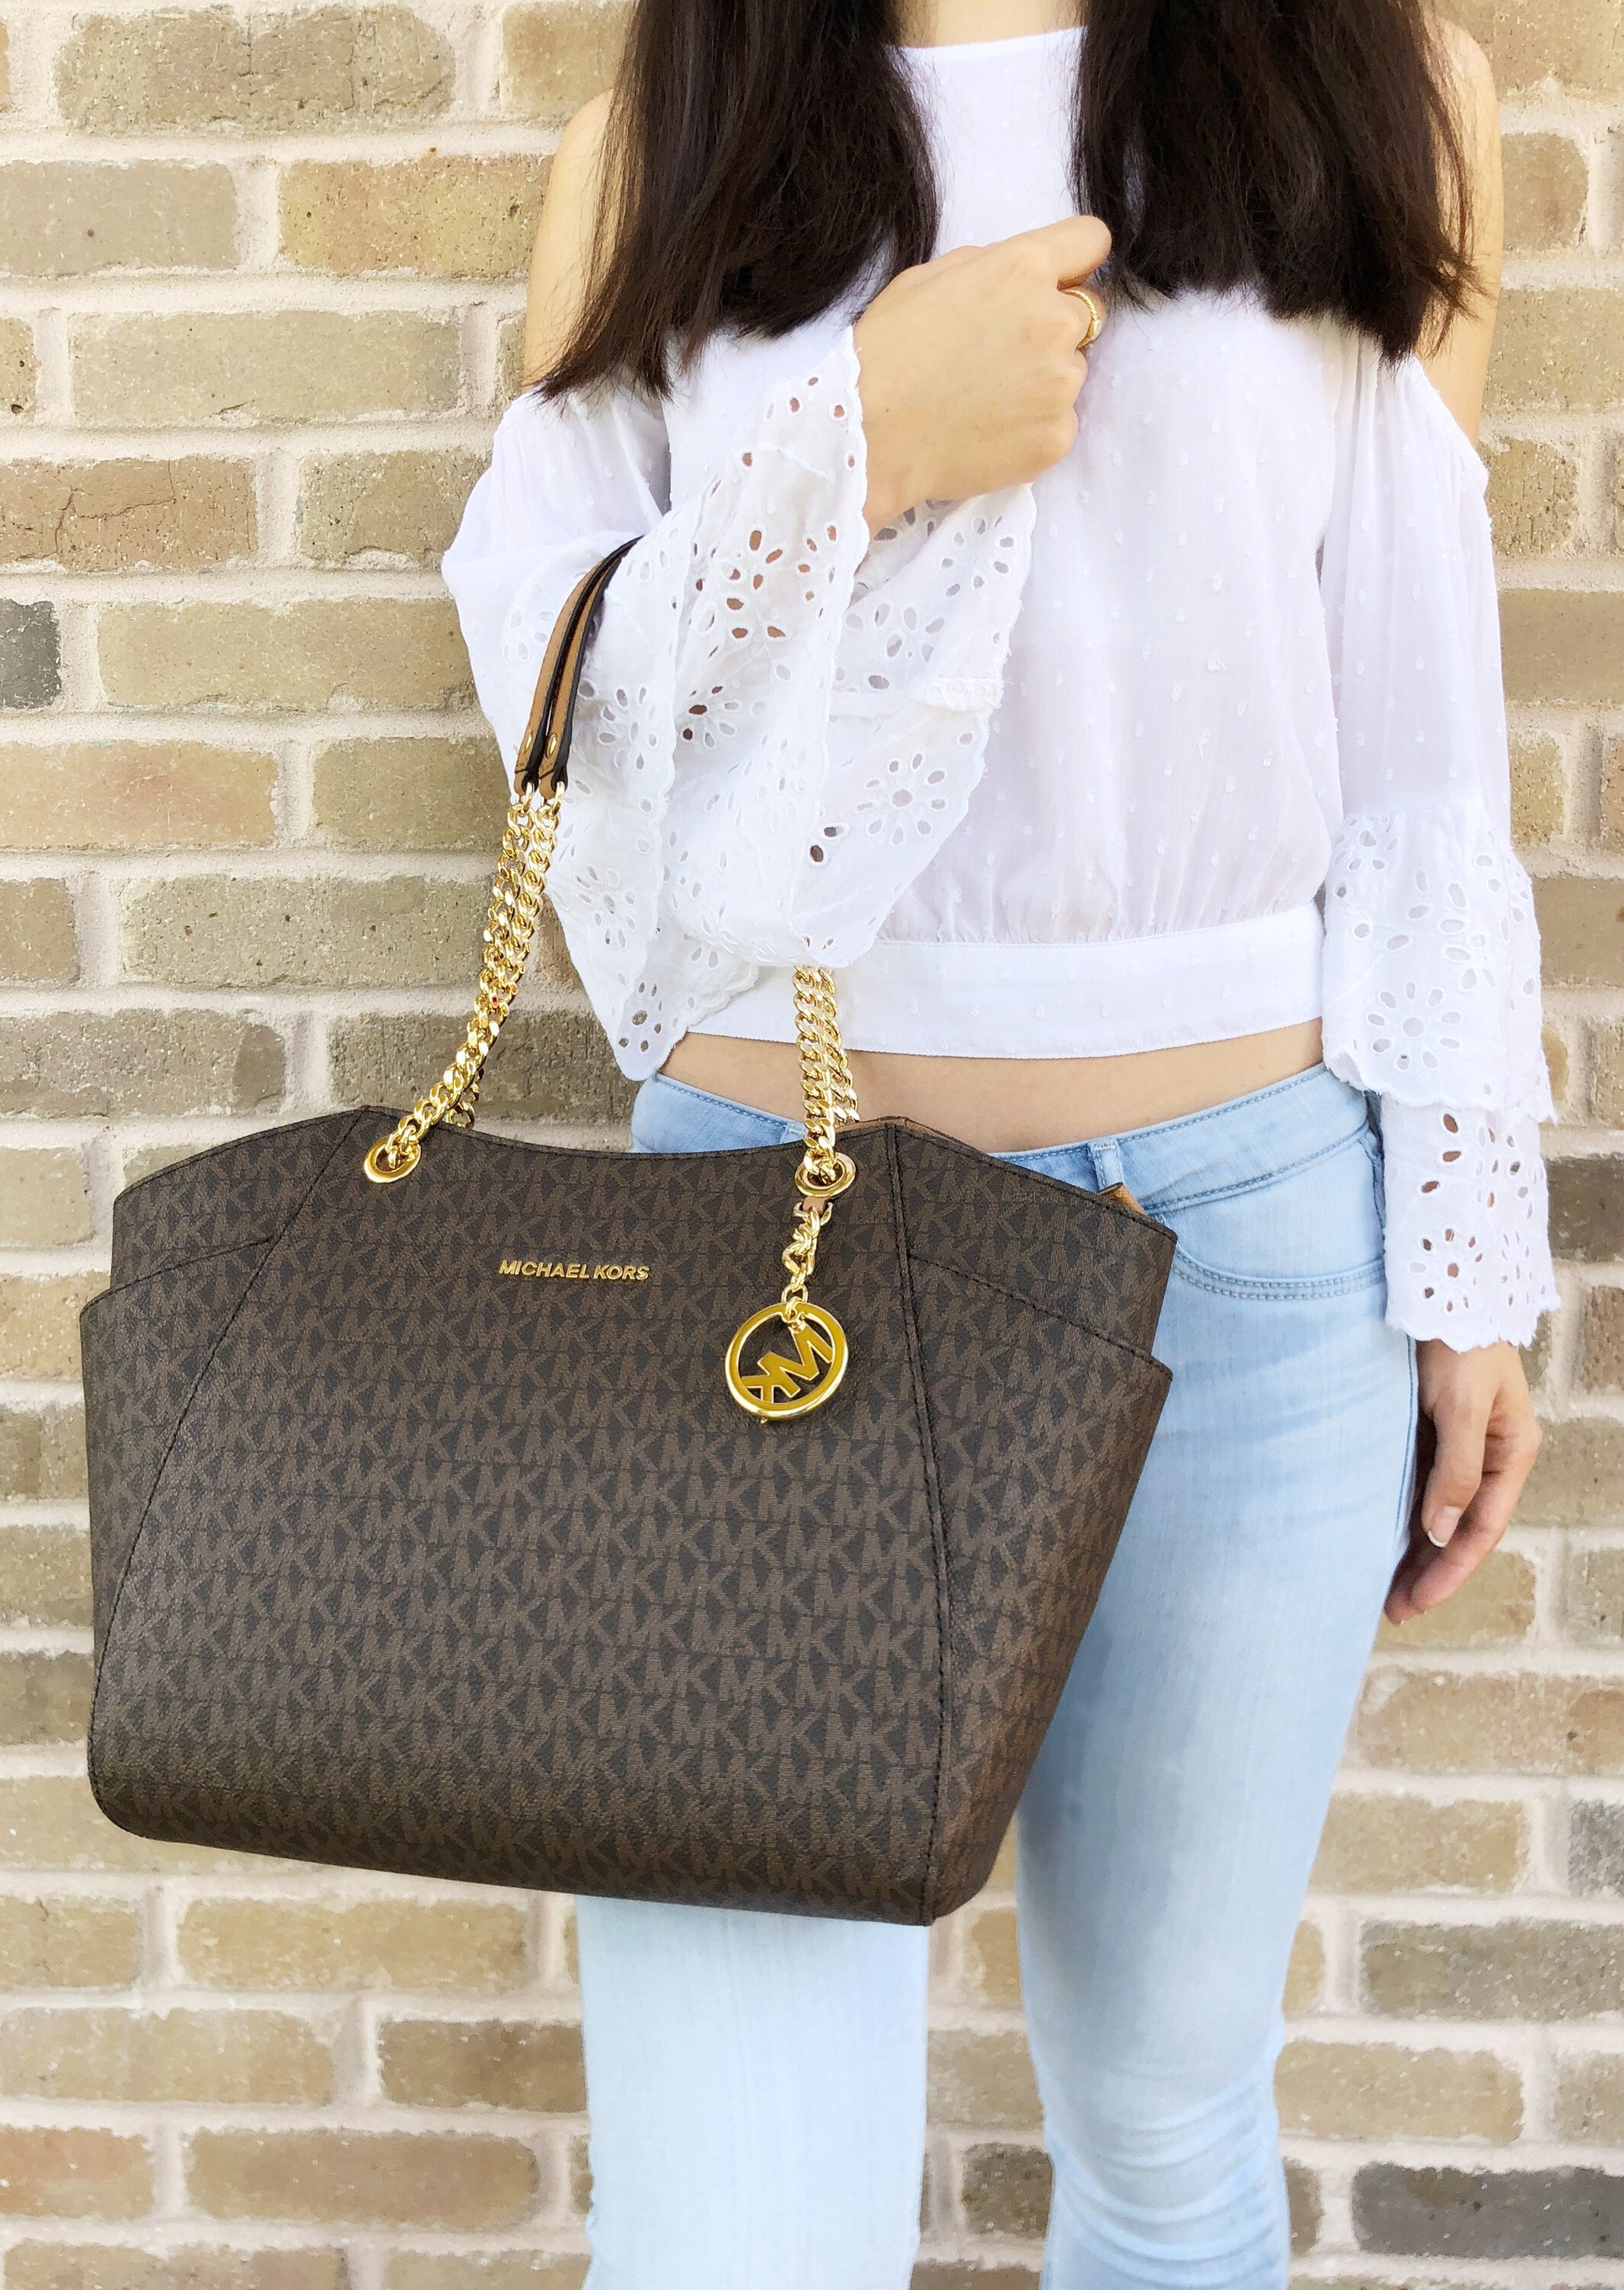 7f29a5fe84d3 Michael Kors Jet Set Travel Chain Shoulder Tote Bag Brown MK 2018 ...